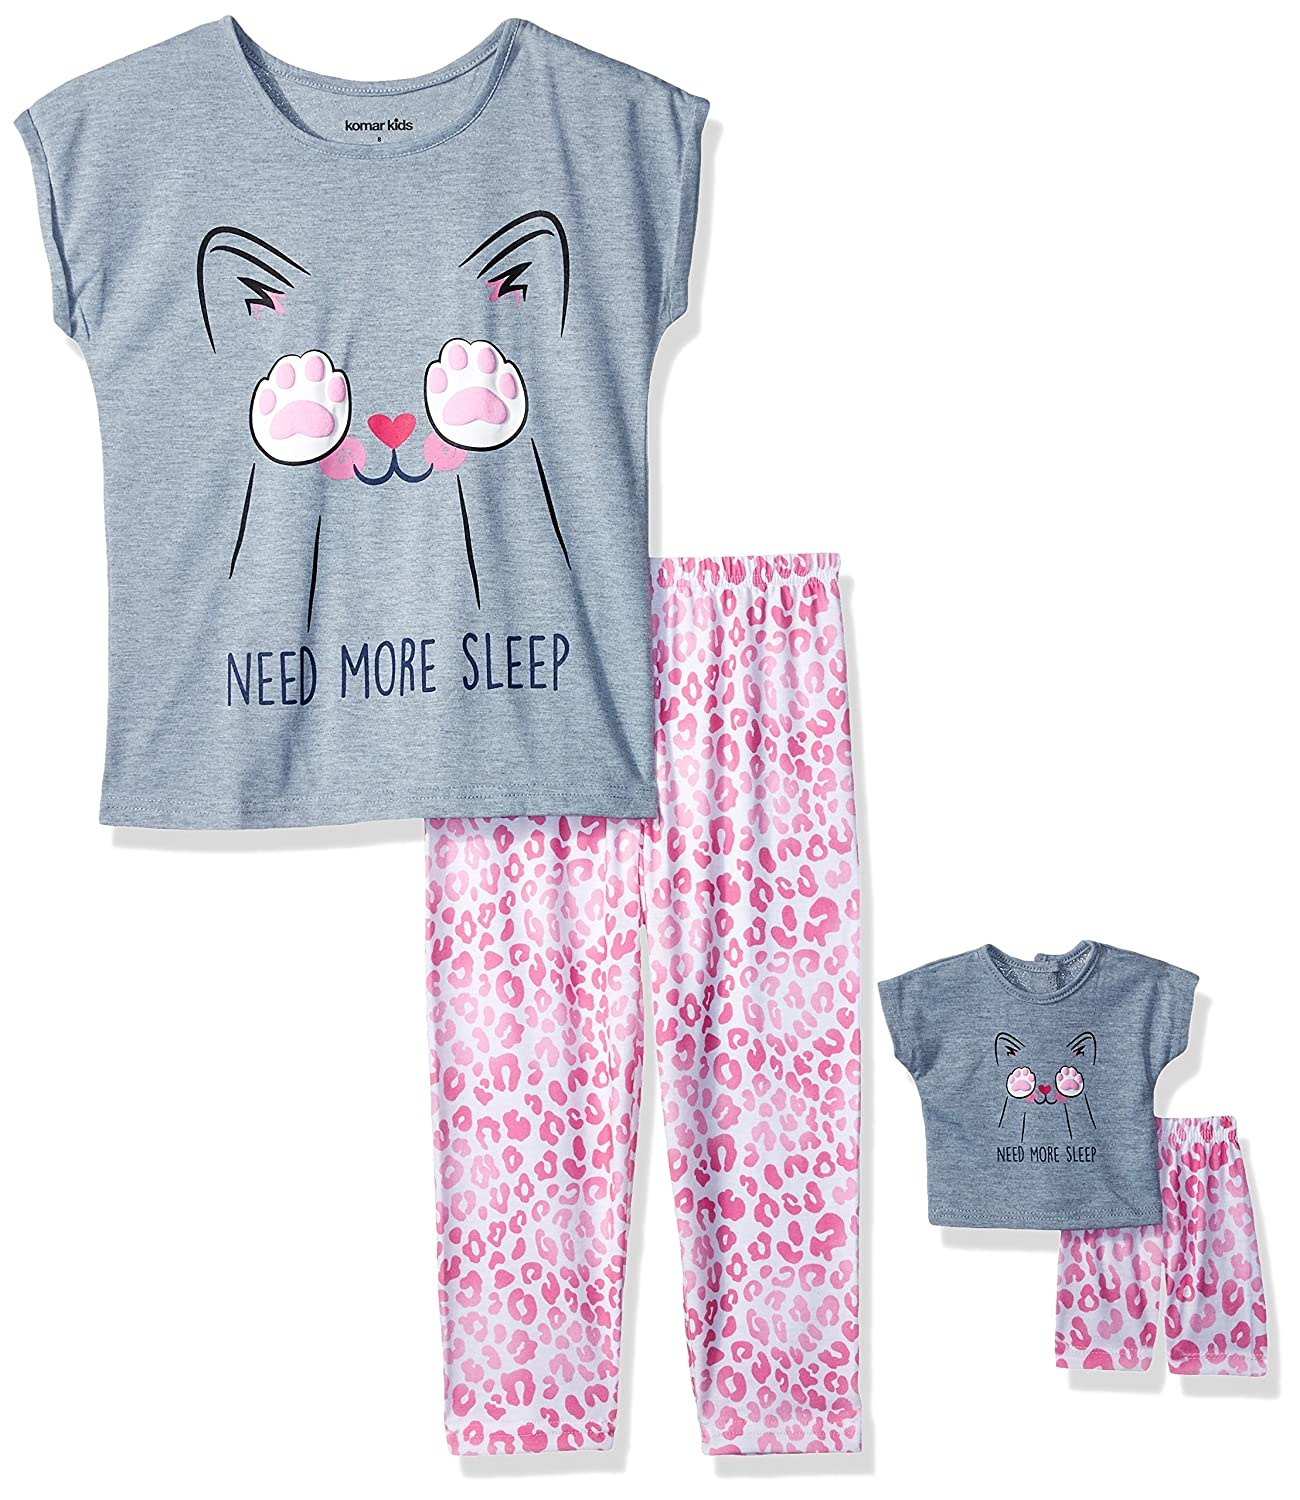 d03bb515229c Amazon.com  Komar Kids Girls  Big Dream Doll Jersey Pajama Set  Clothing